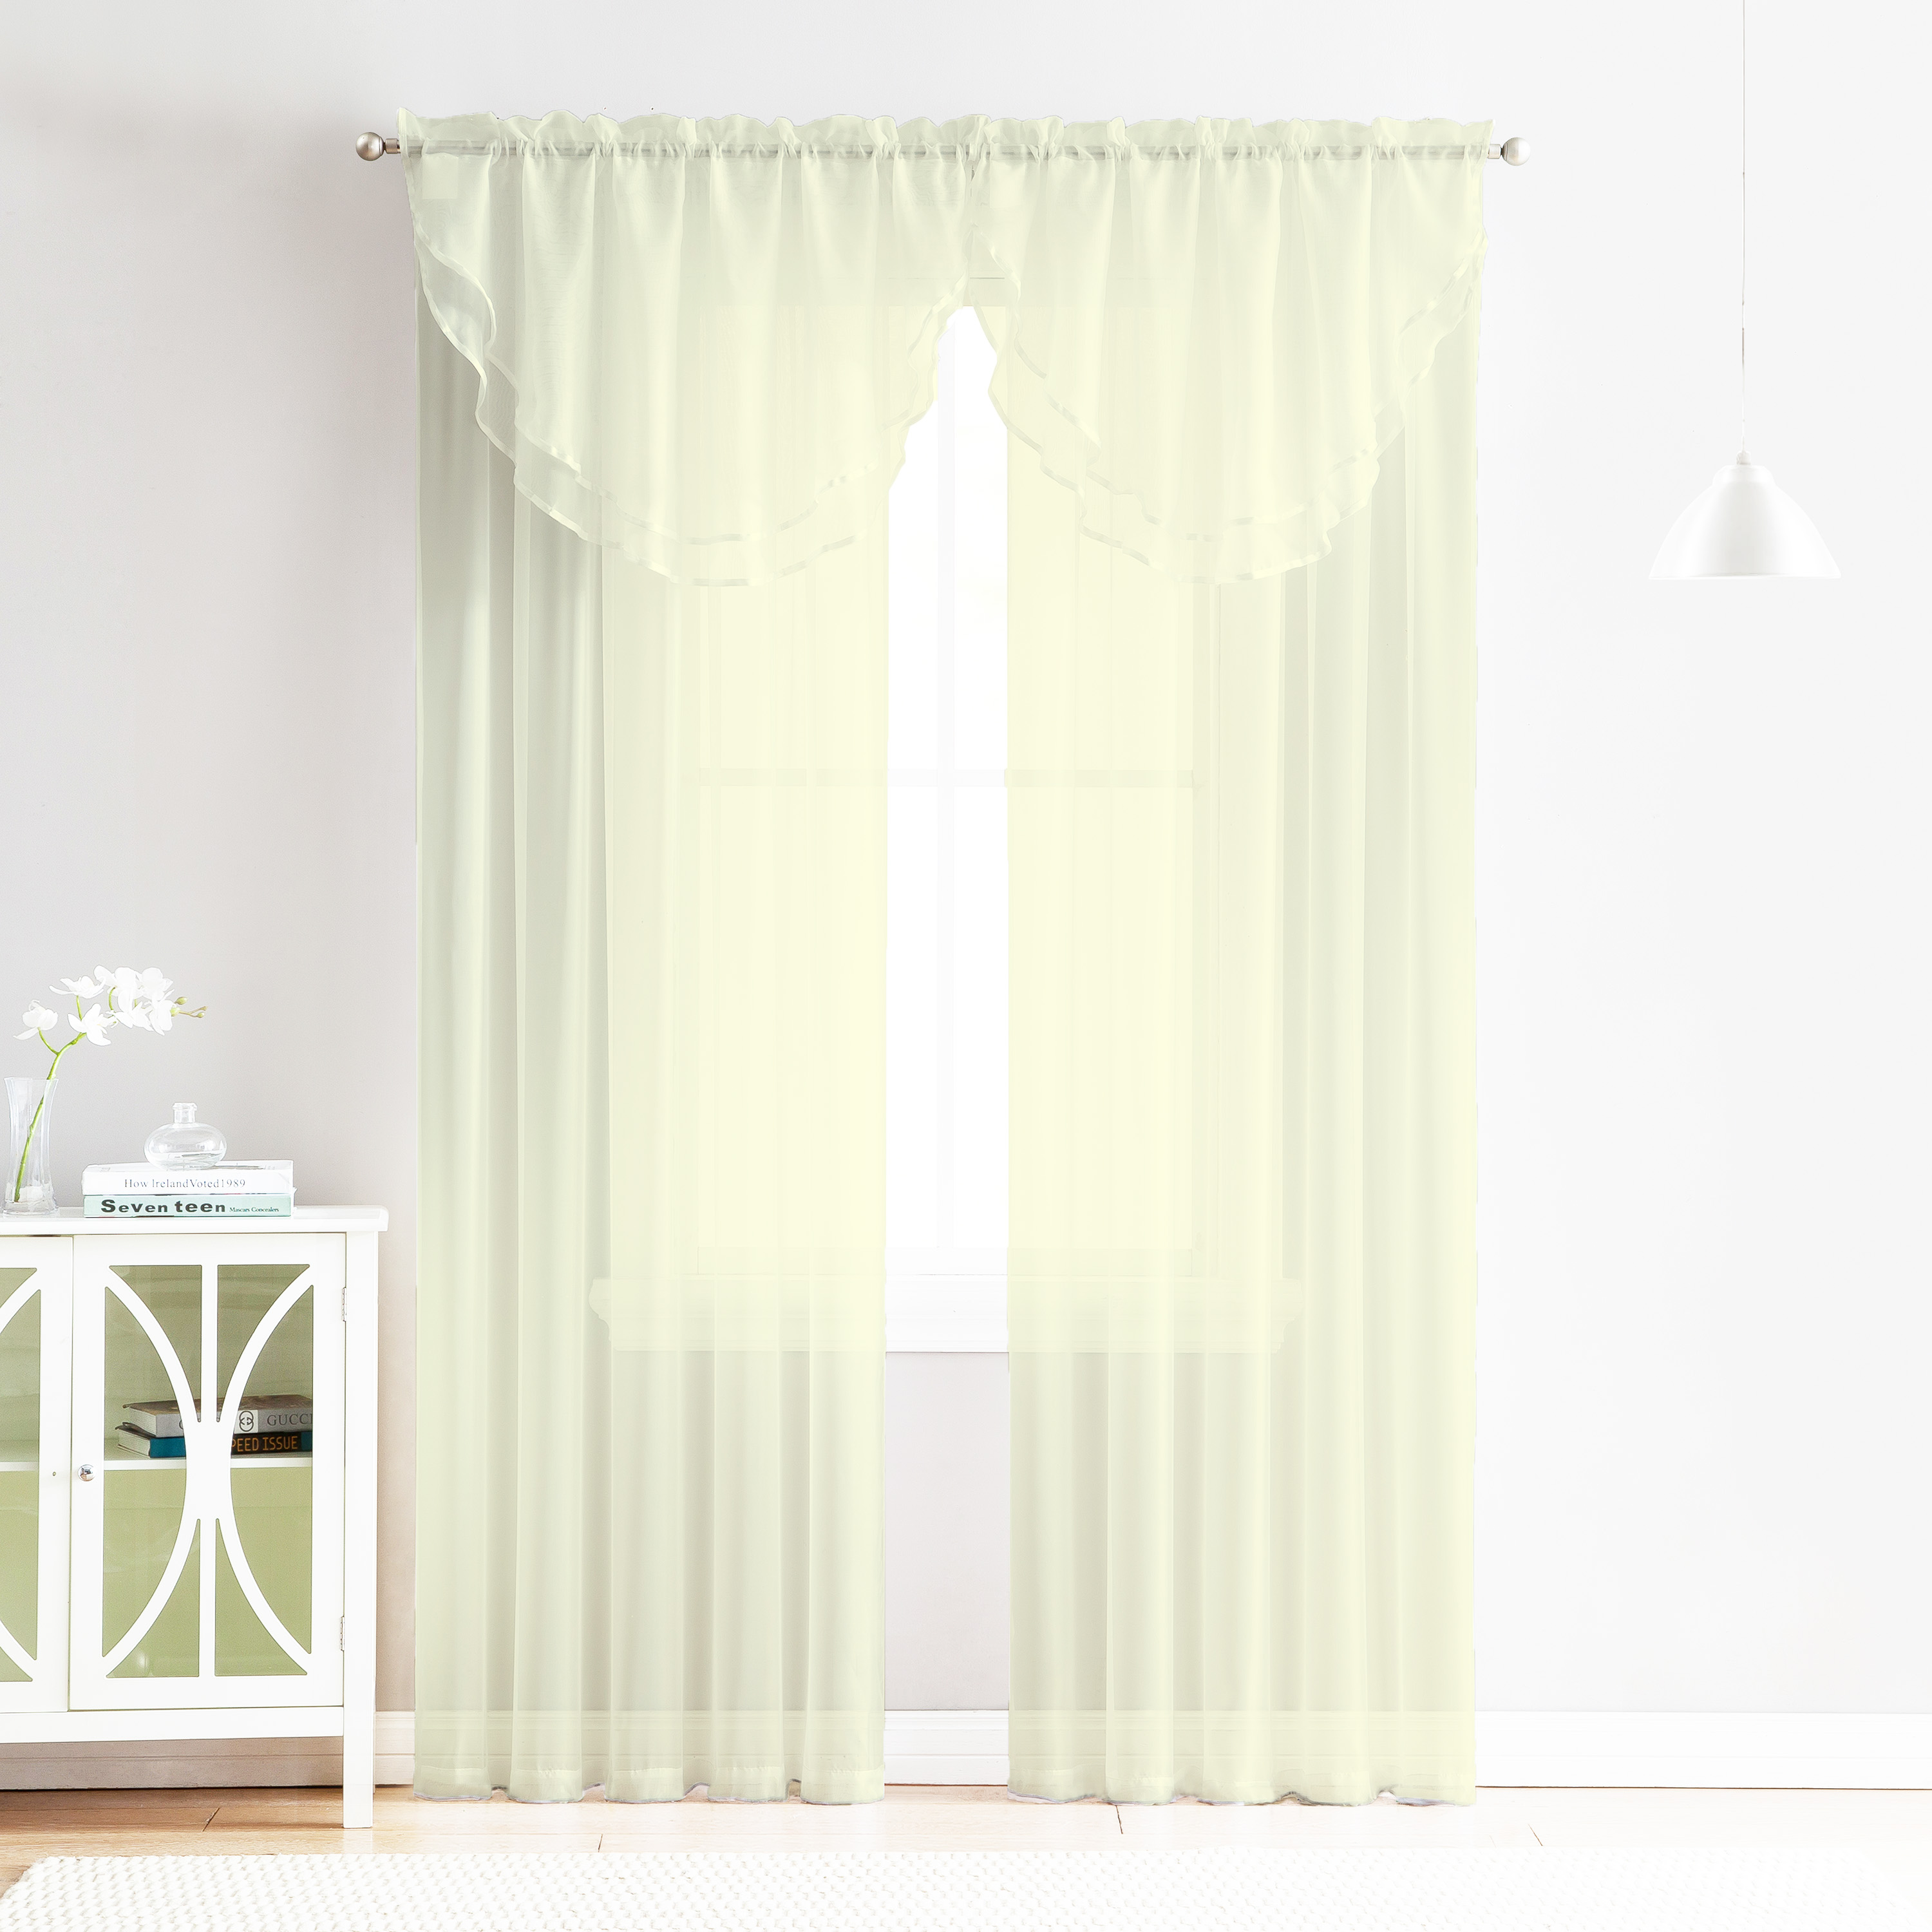 Dining Room Window Valances: 4 Piece Sheer Window Curtain Set For Living Room, Dining